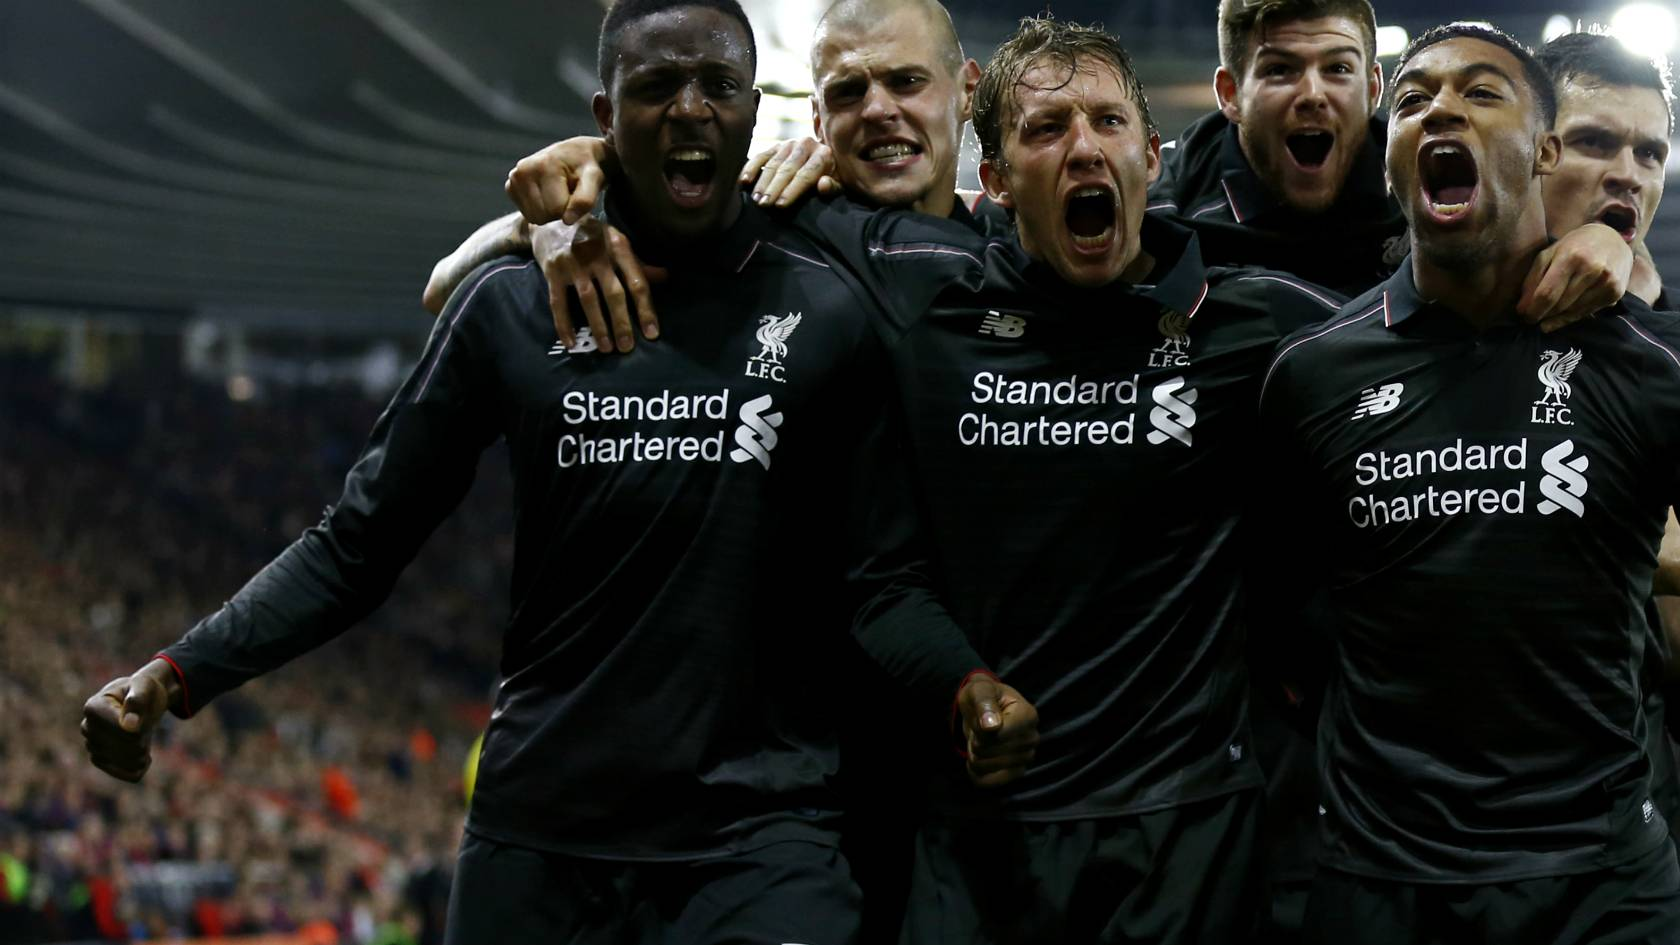 east liverpool chatrooms Liverpool fc news, opinion and videos updated daily with lfc photographs, fixtures, match reports, football quizzes, features and discussion from anfield.